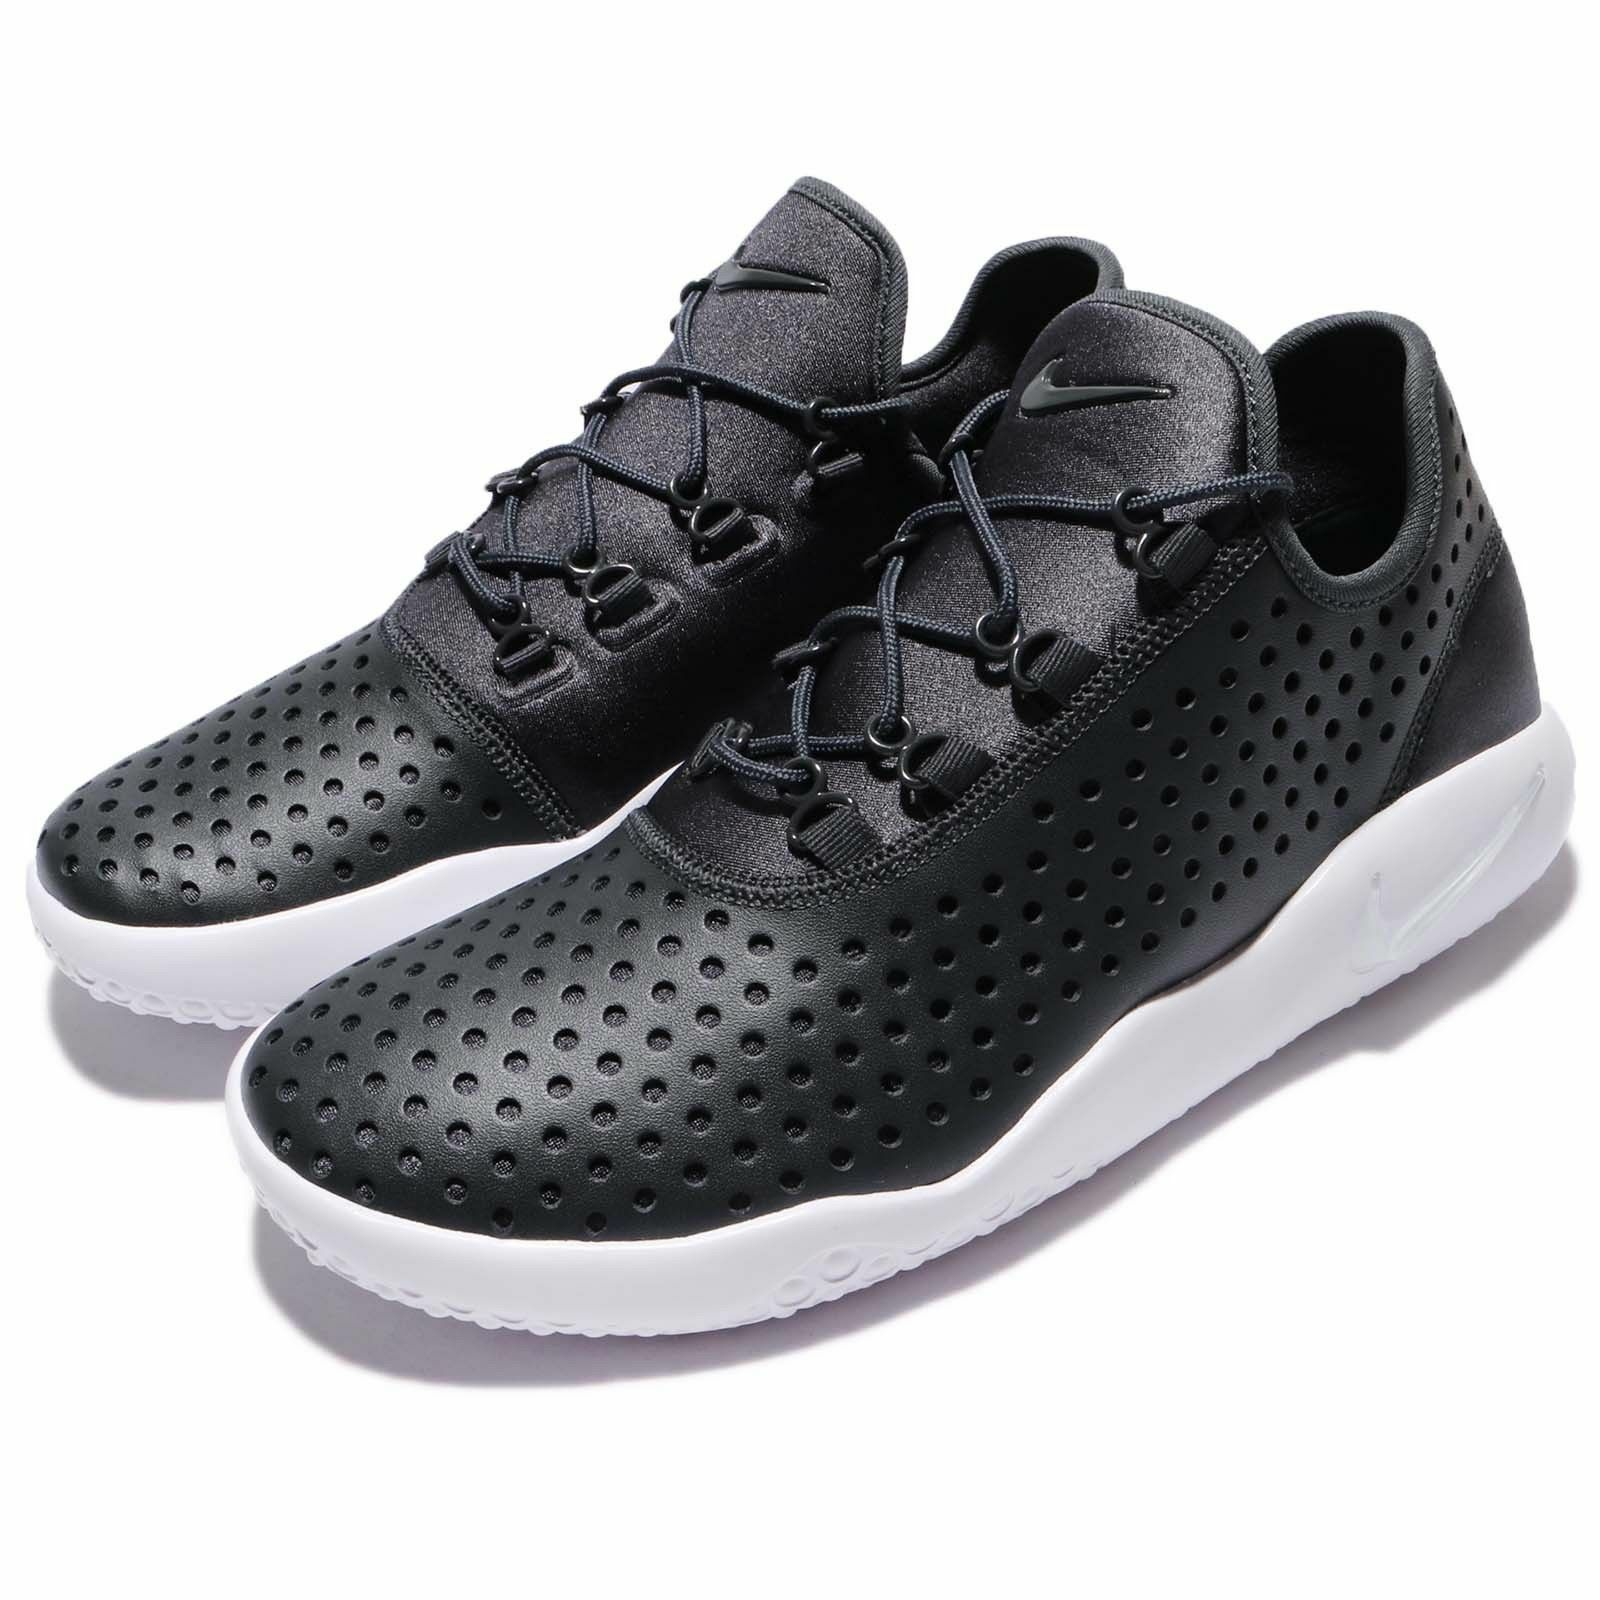 Nike FL-RUE  Anthracite White Black Men Casual shoes Sneakers 896173-002 11